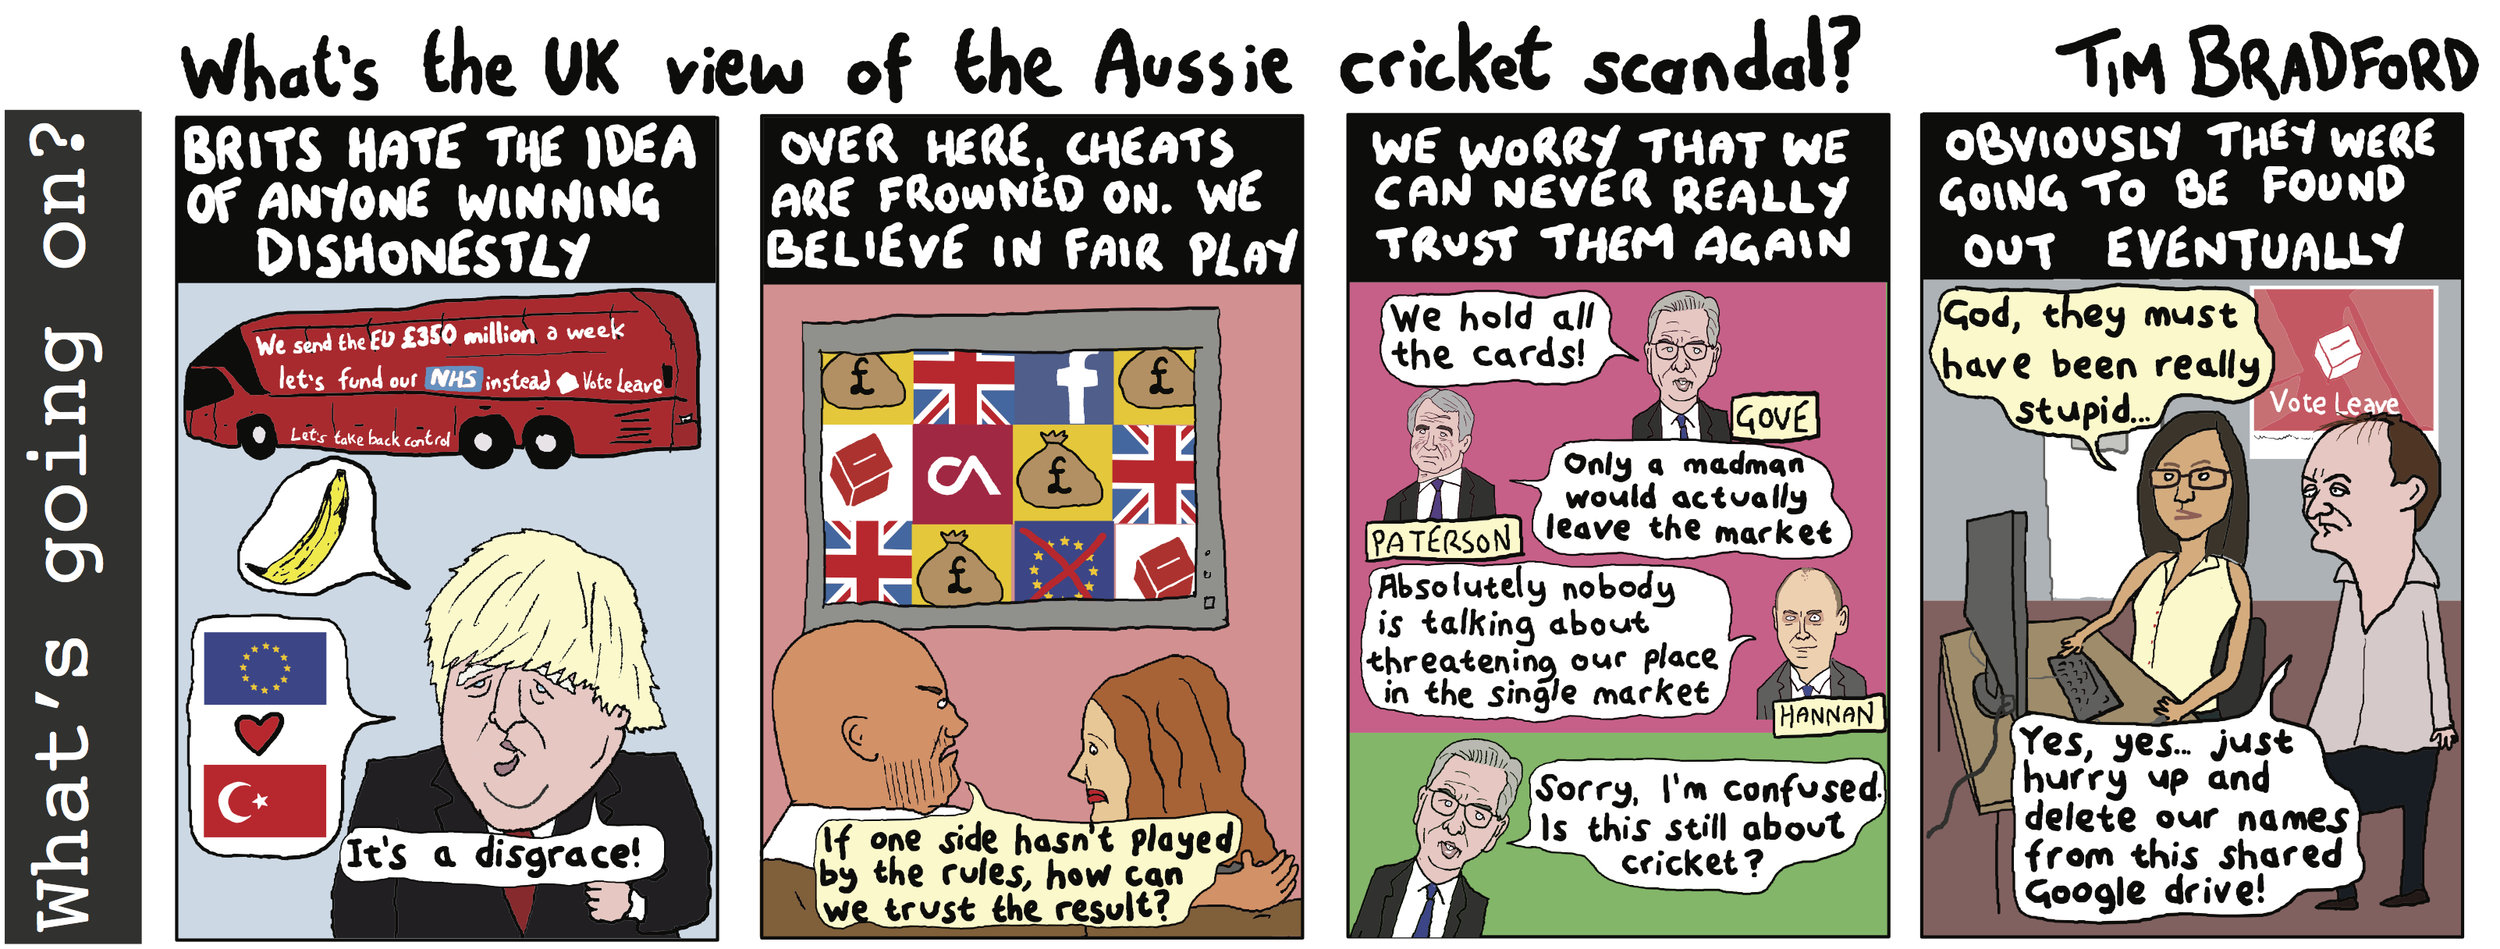 What's the UK view of the Aussie cricket scandal? - 27/03/18